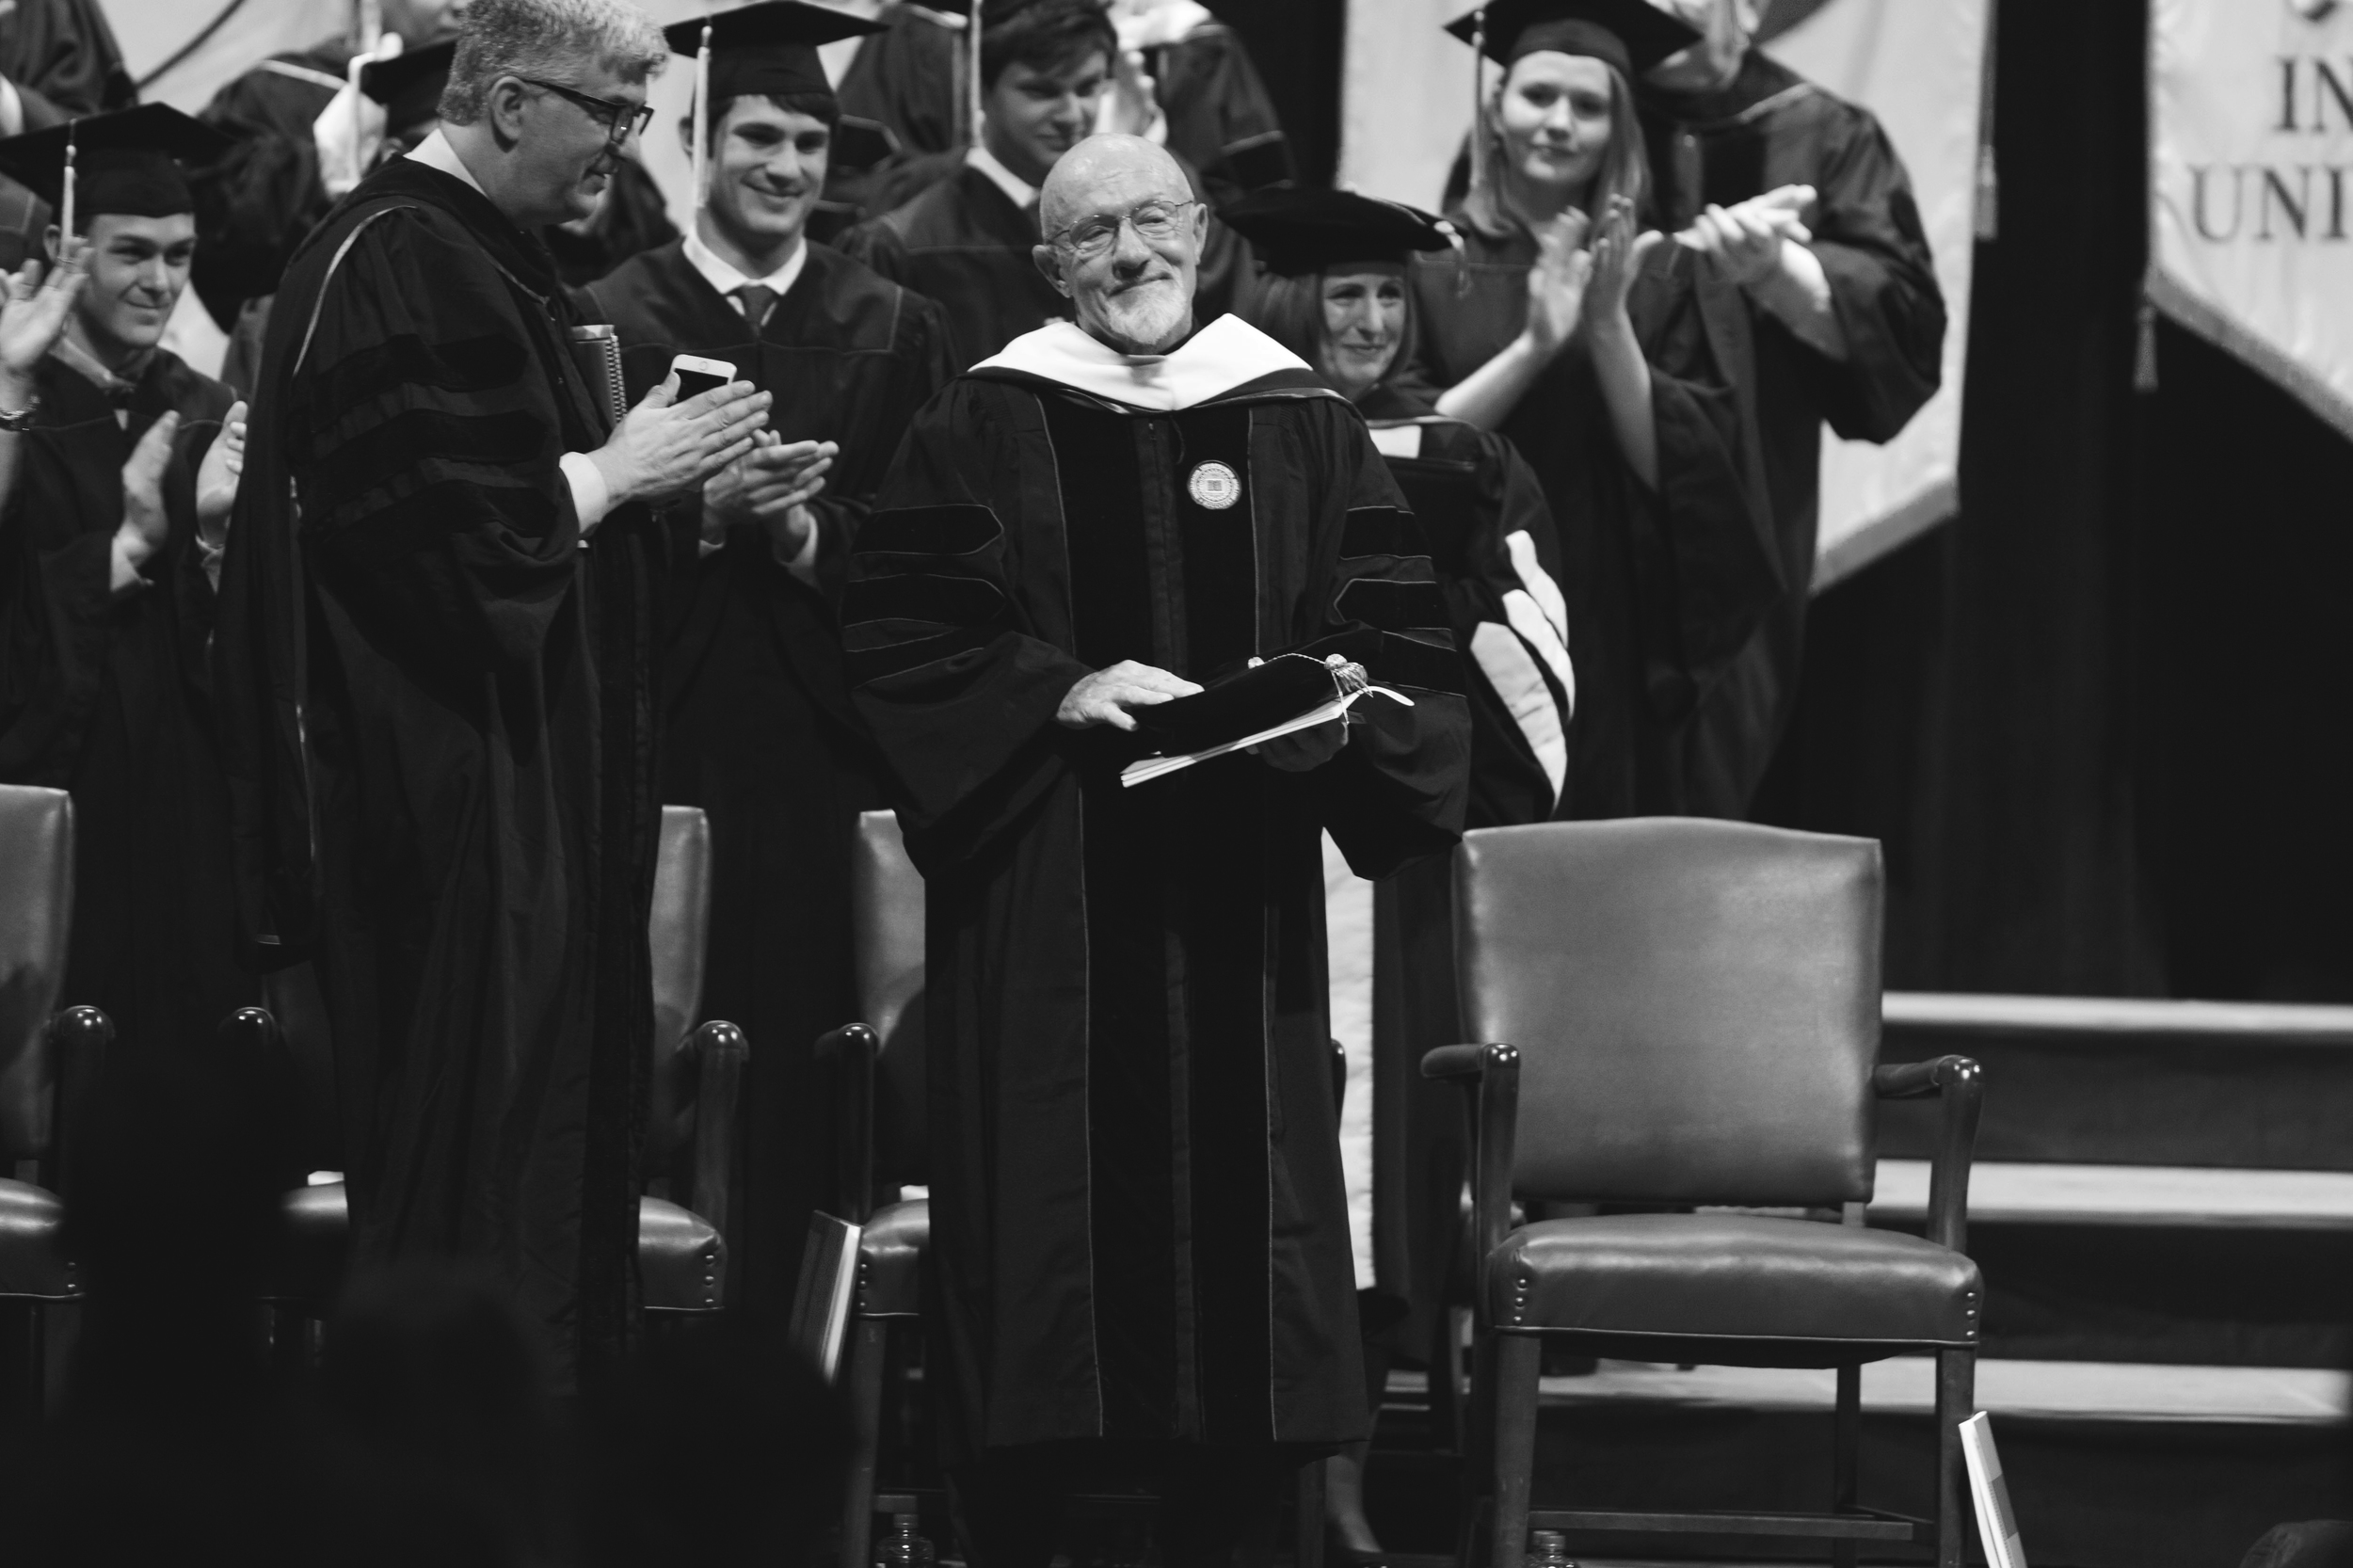 20160410_Honors_Convocation_CNM_265bw.jpg